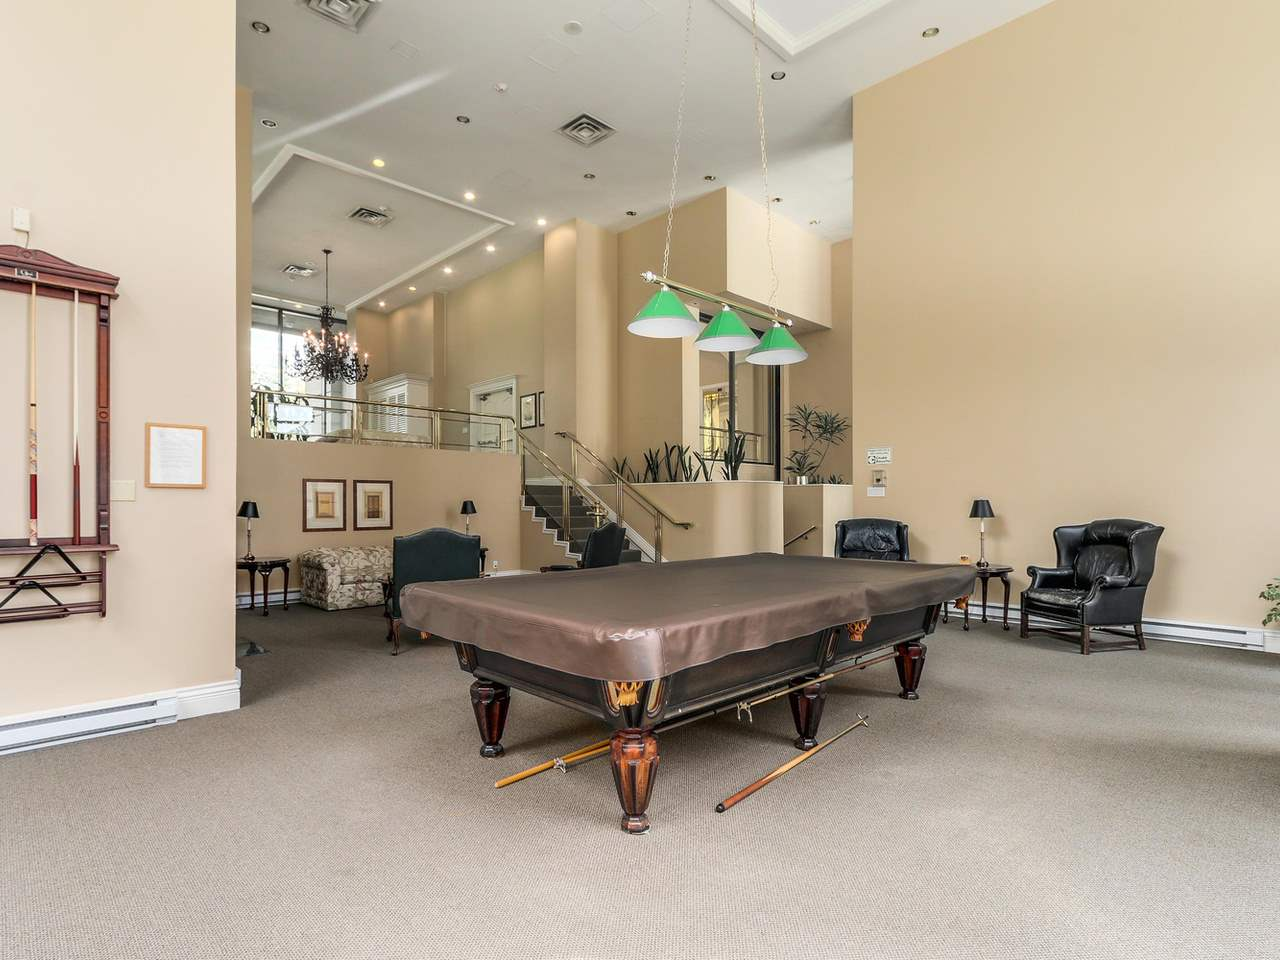 Photo 17: 1005 6888 STATION HILL Drive in Burnaby: South Slope Condo for sale (Burnaby South)  : MLS® # R2125491